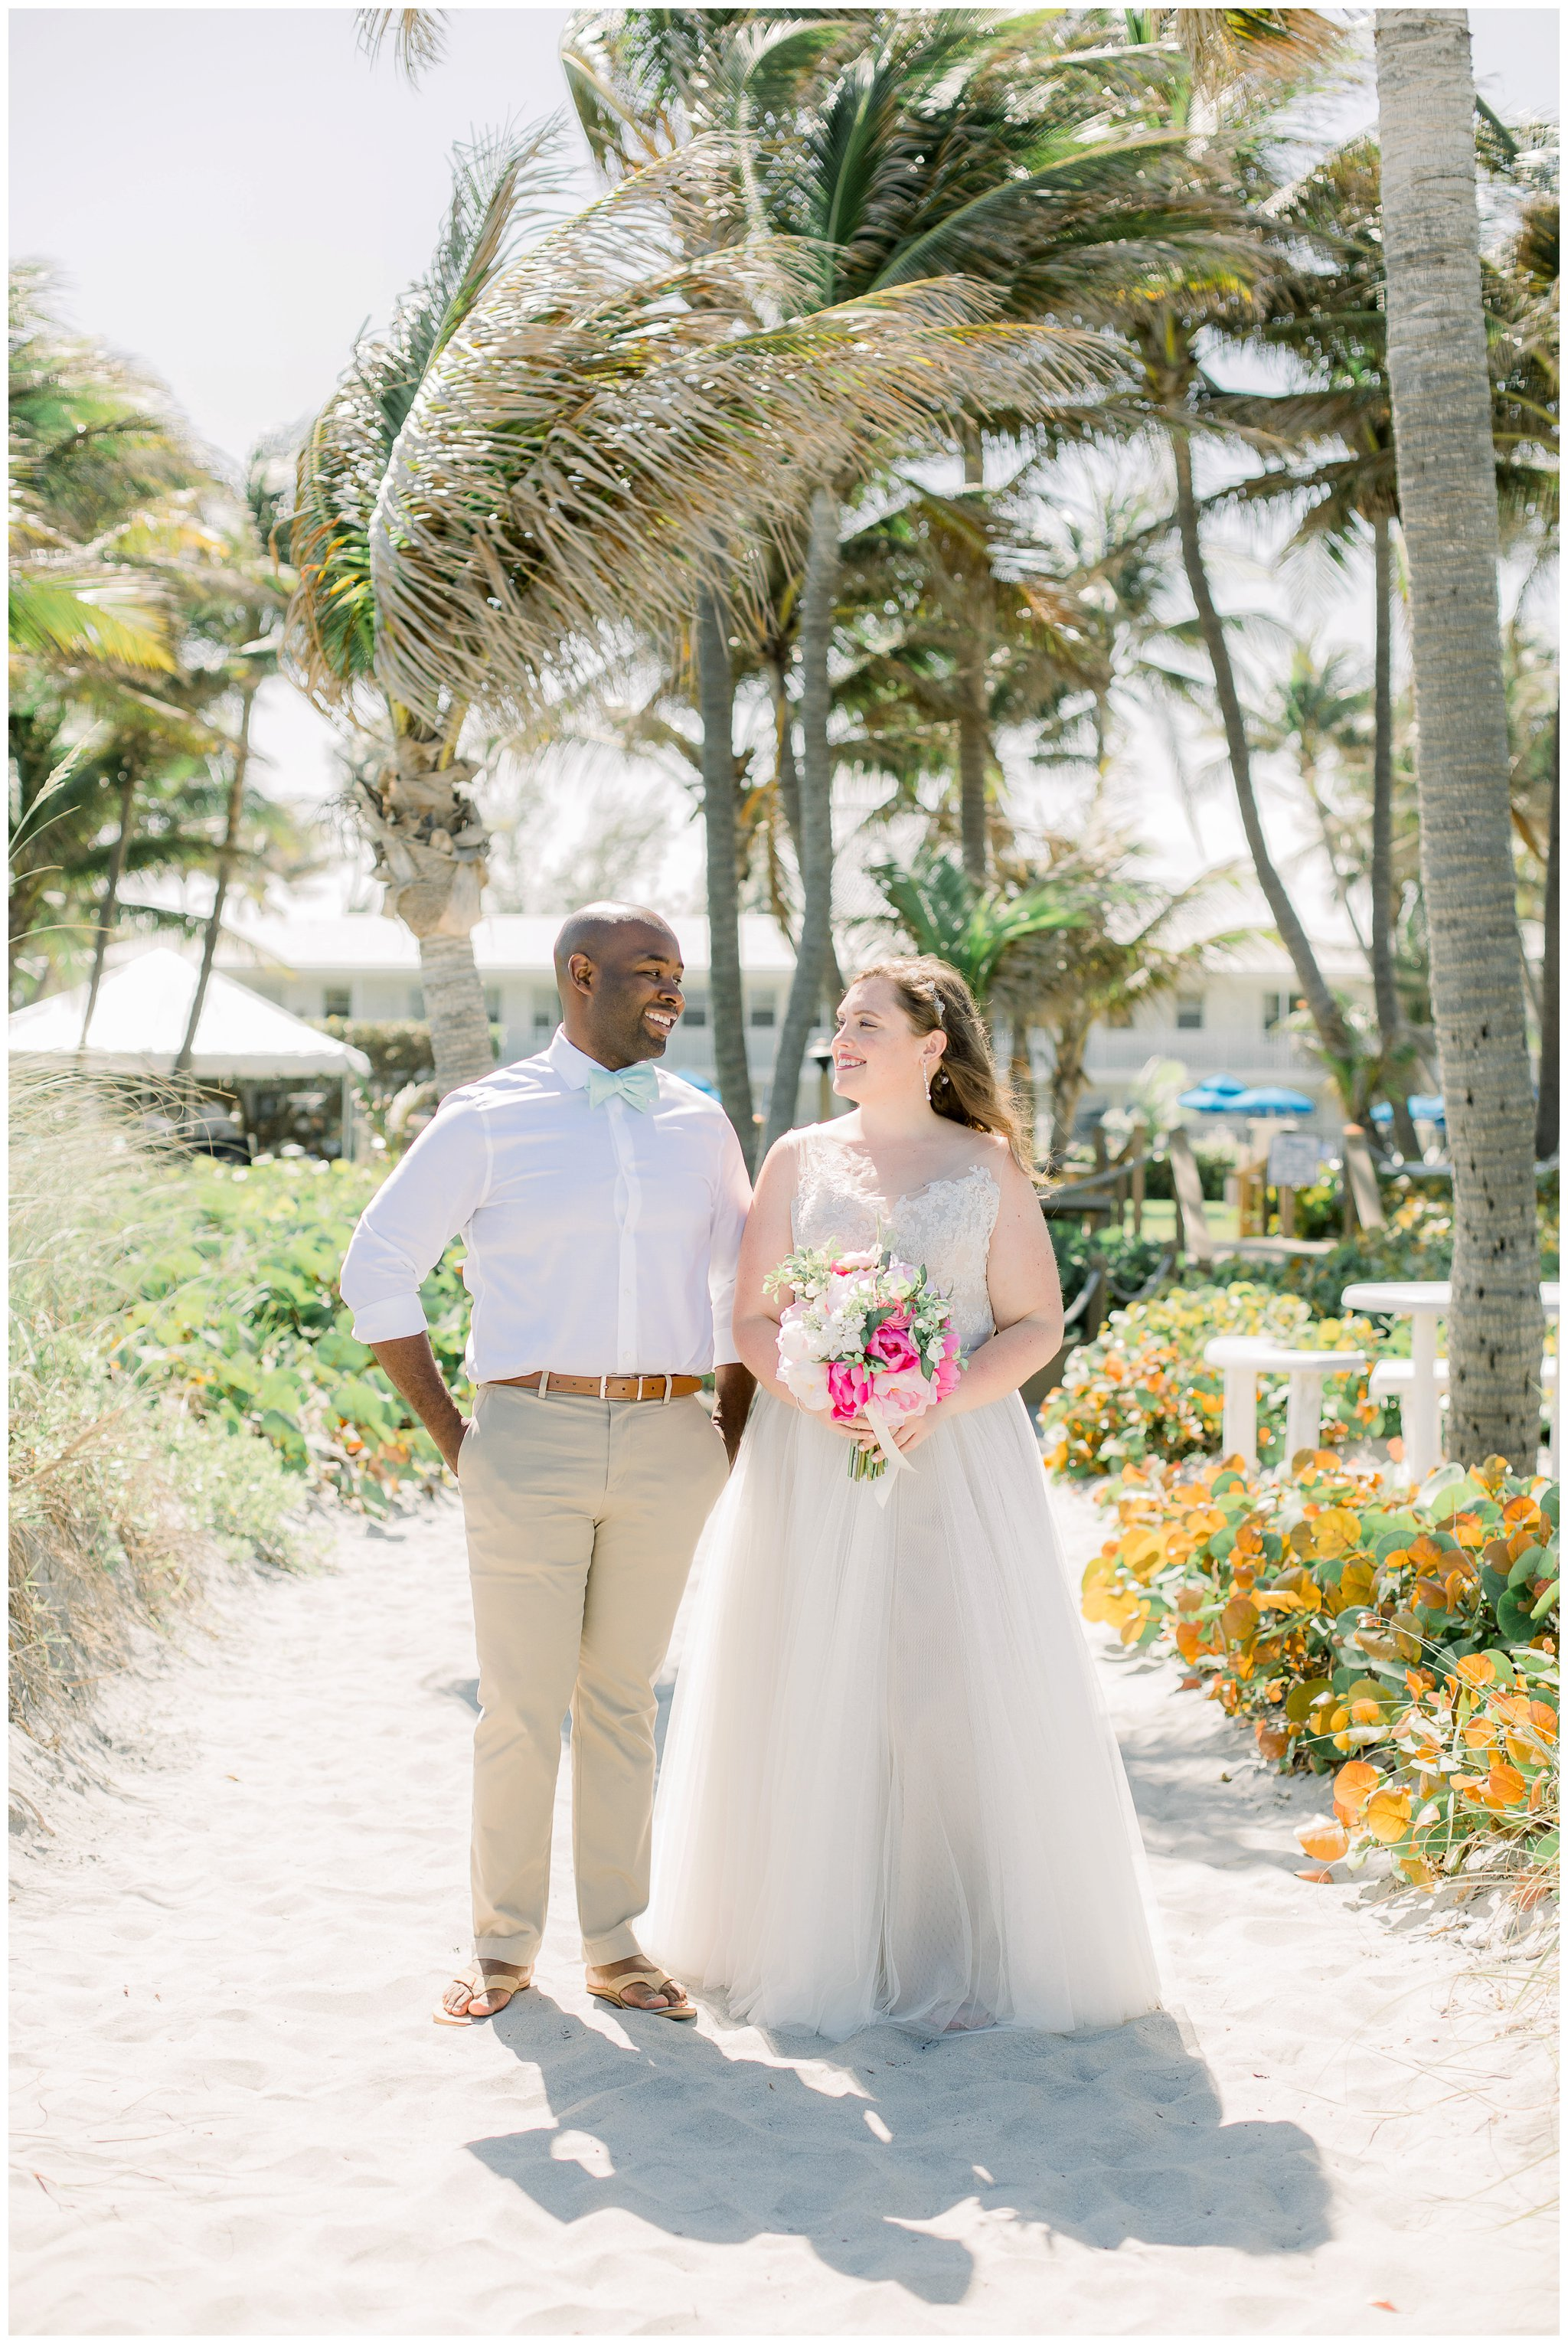 South Florida Wedding Photographer- Palm Beach Wedding Photographer- Jupiter Wedding Photographer- Florida Photographer- Wright by the Sea Wedding- Wright by the Sea- Sturat Florida Wedding_0030.jpg